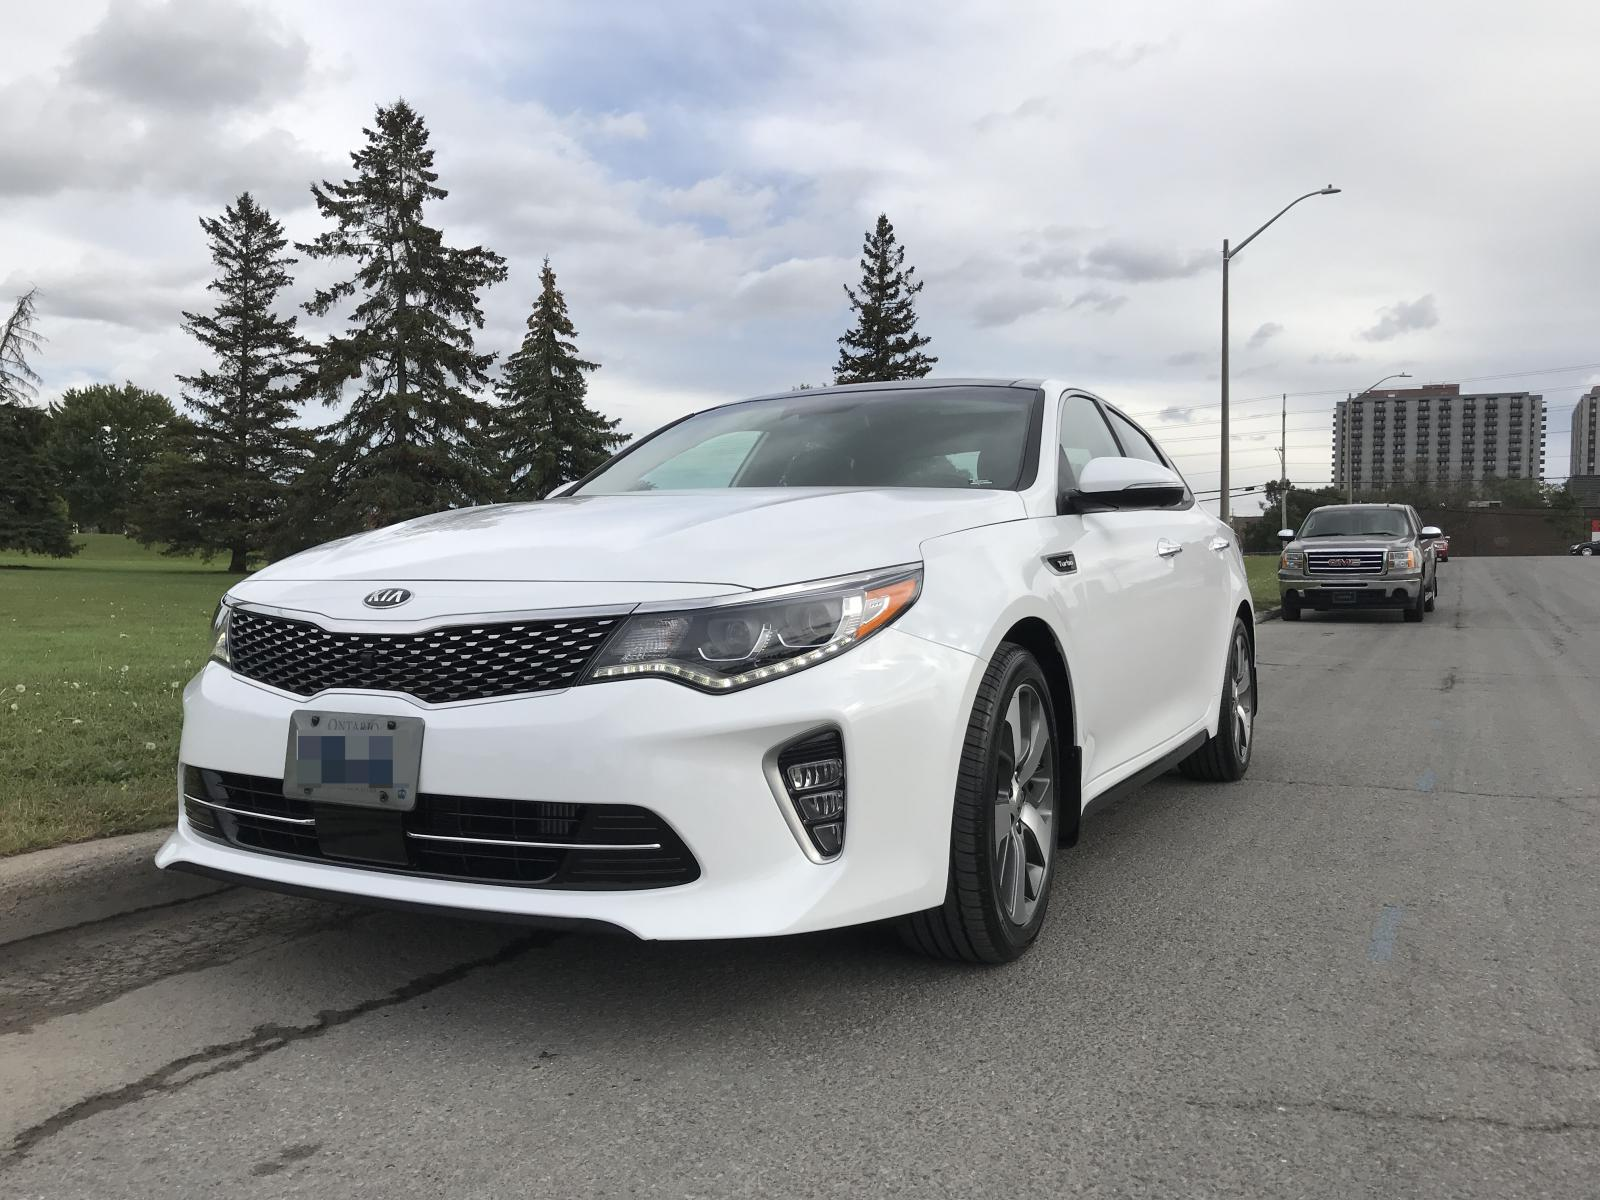 Bmw My Eservices >> New 2018 Kia Optima SXL owner coming from BMW